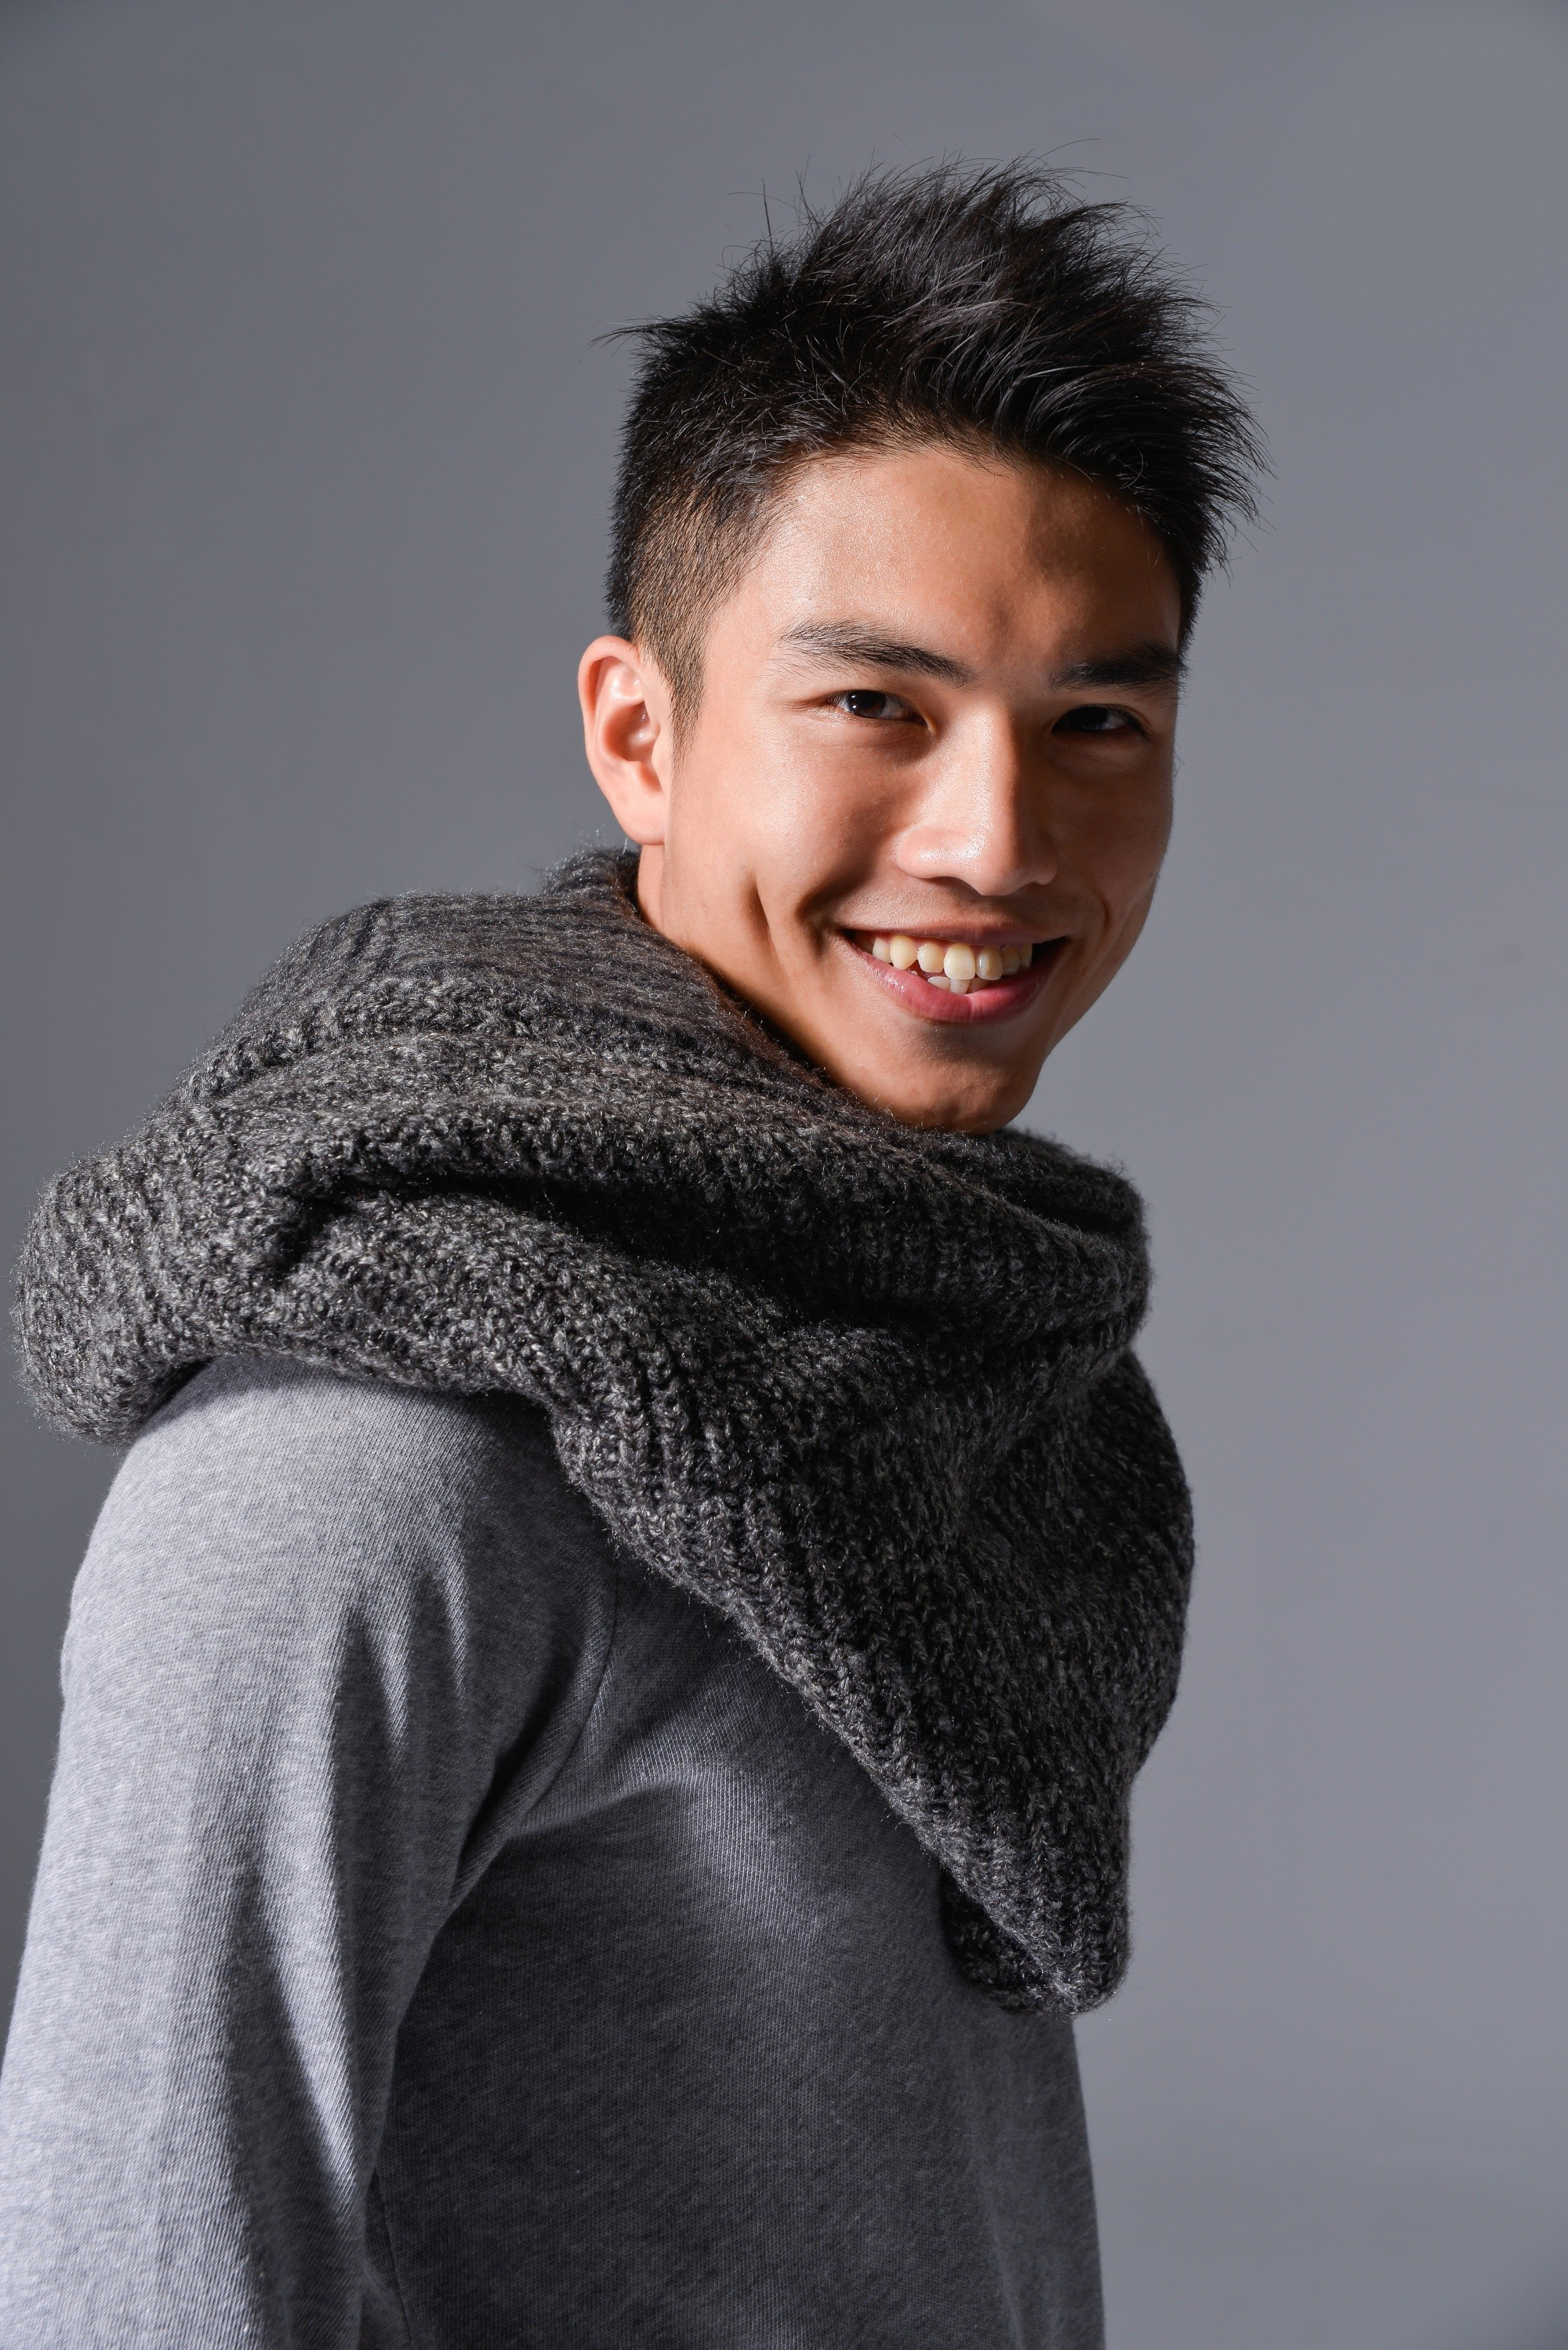 Messy hairstyles men: Man with short black messy layered hair wearing a gray scarf and shirt